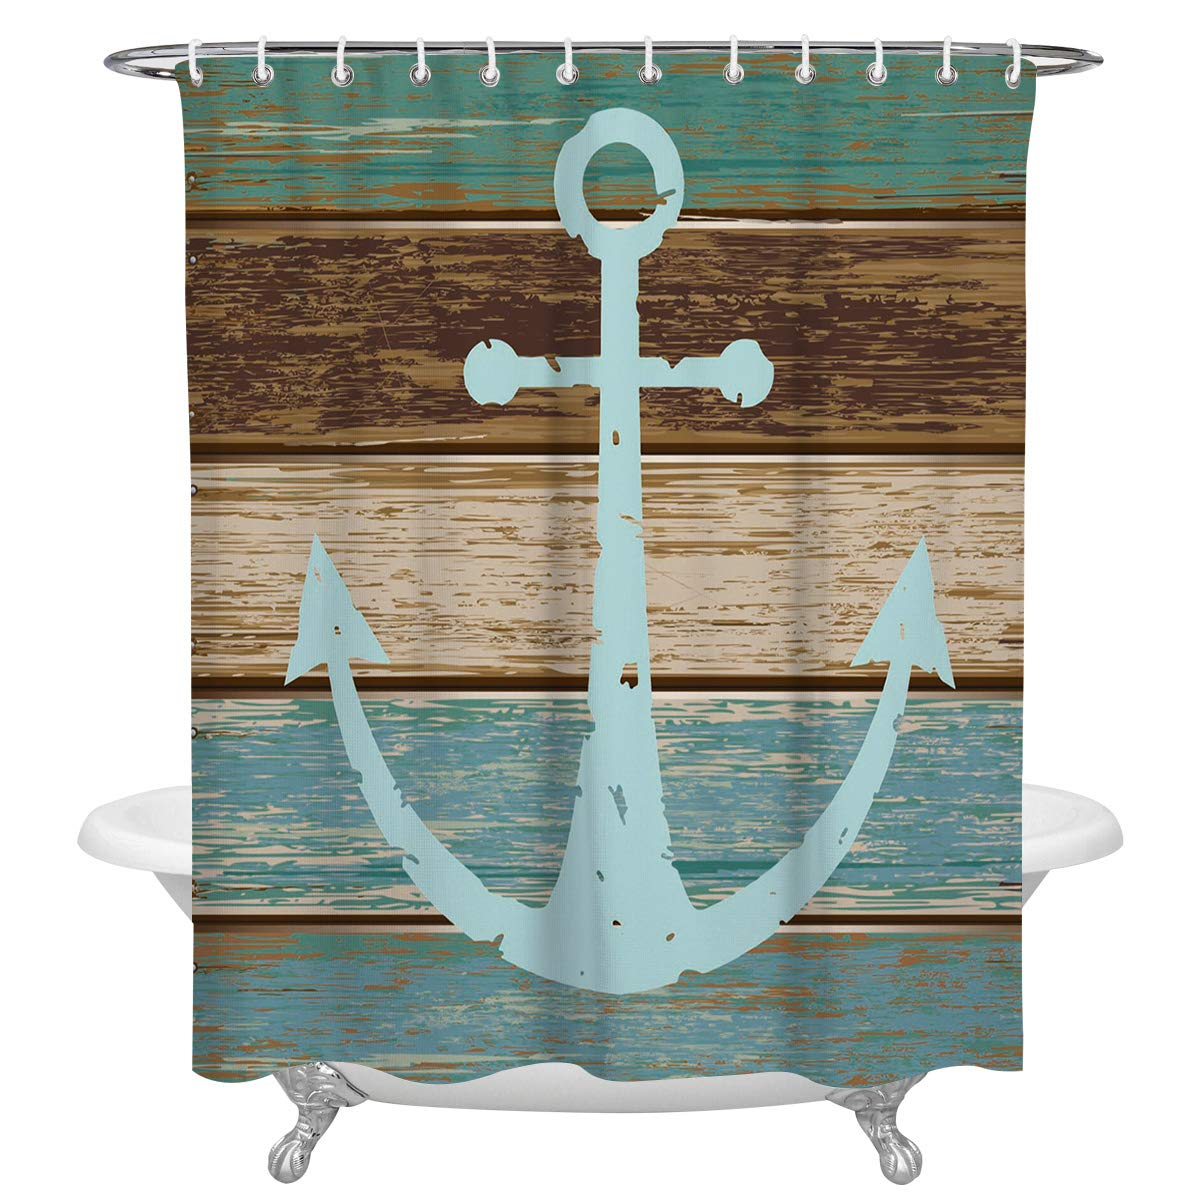 FAMILYDECOR Anchor Decor Polyester Fabric Shower Curtains for Bathroom, Nautical Theme Blue Anchor on Vintage Wooden Planks Waterproof Bath Curtain with Hooks, 72x78 Inch, White and Gray